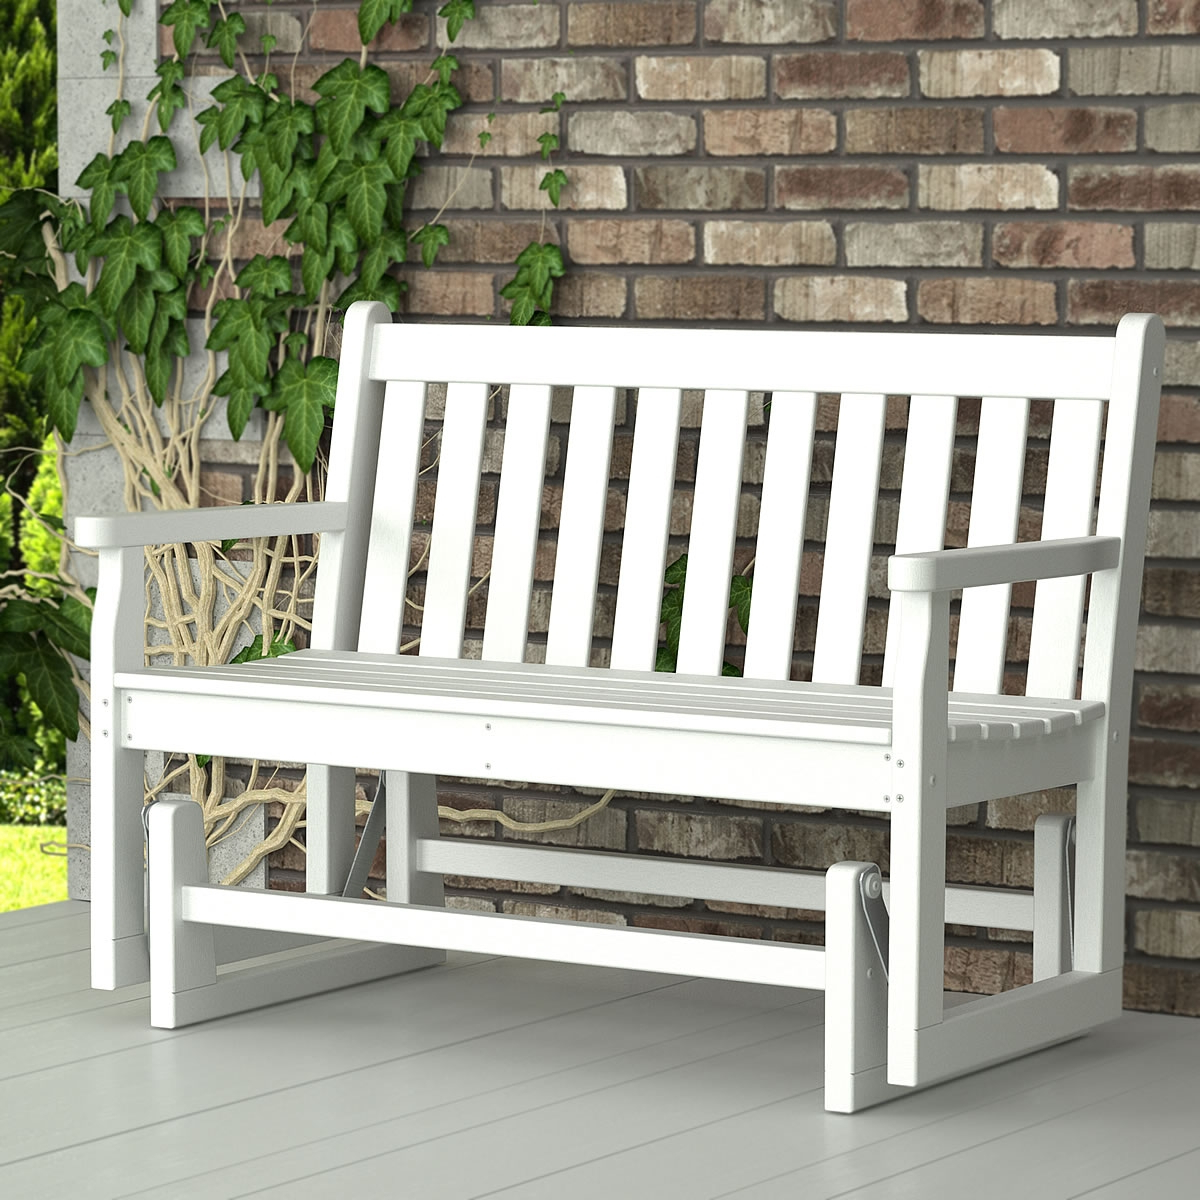 Hardwood Porch Glider Benches Regarding Most Current Furniture: White Wooden Porch Glider For Outdoor Furniture Ideas (View 10 of 30)